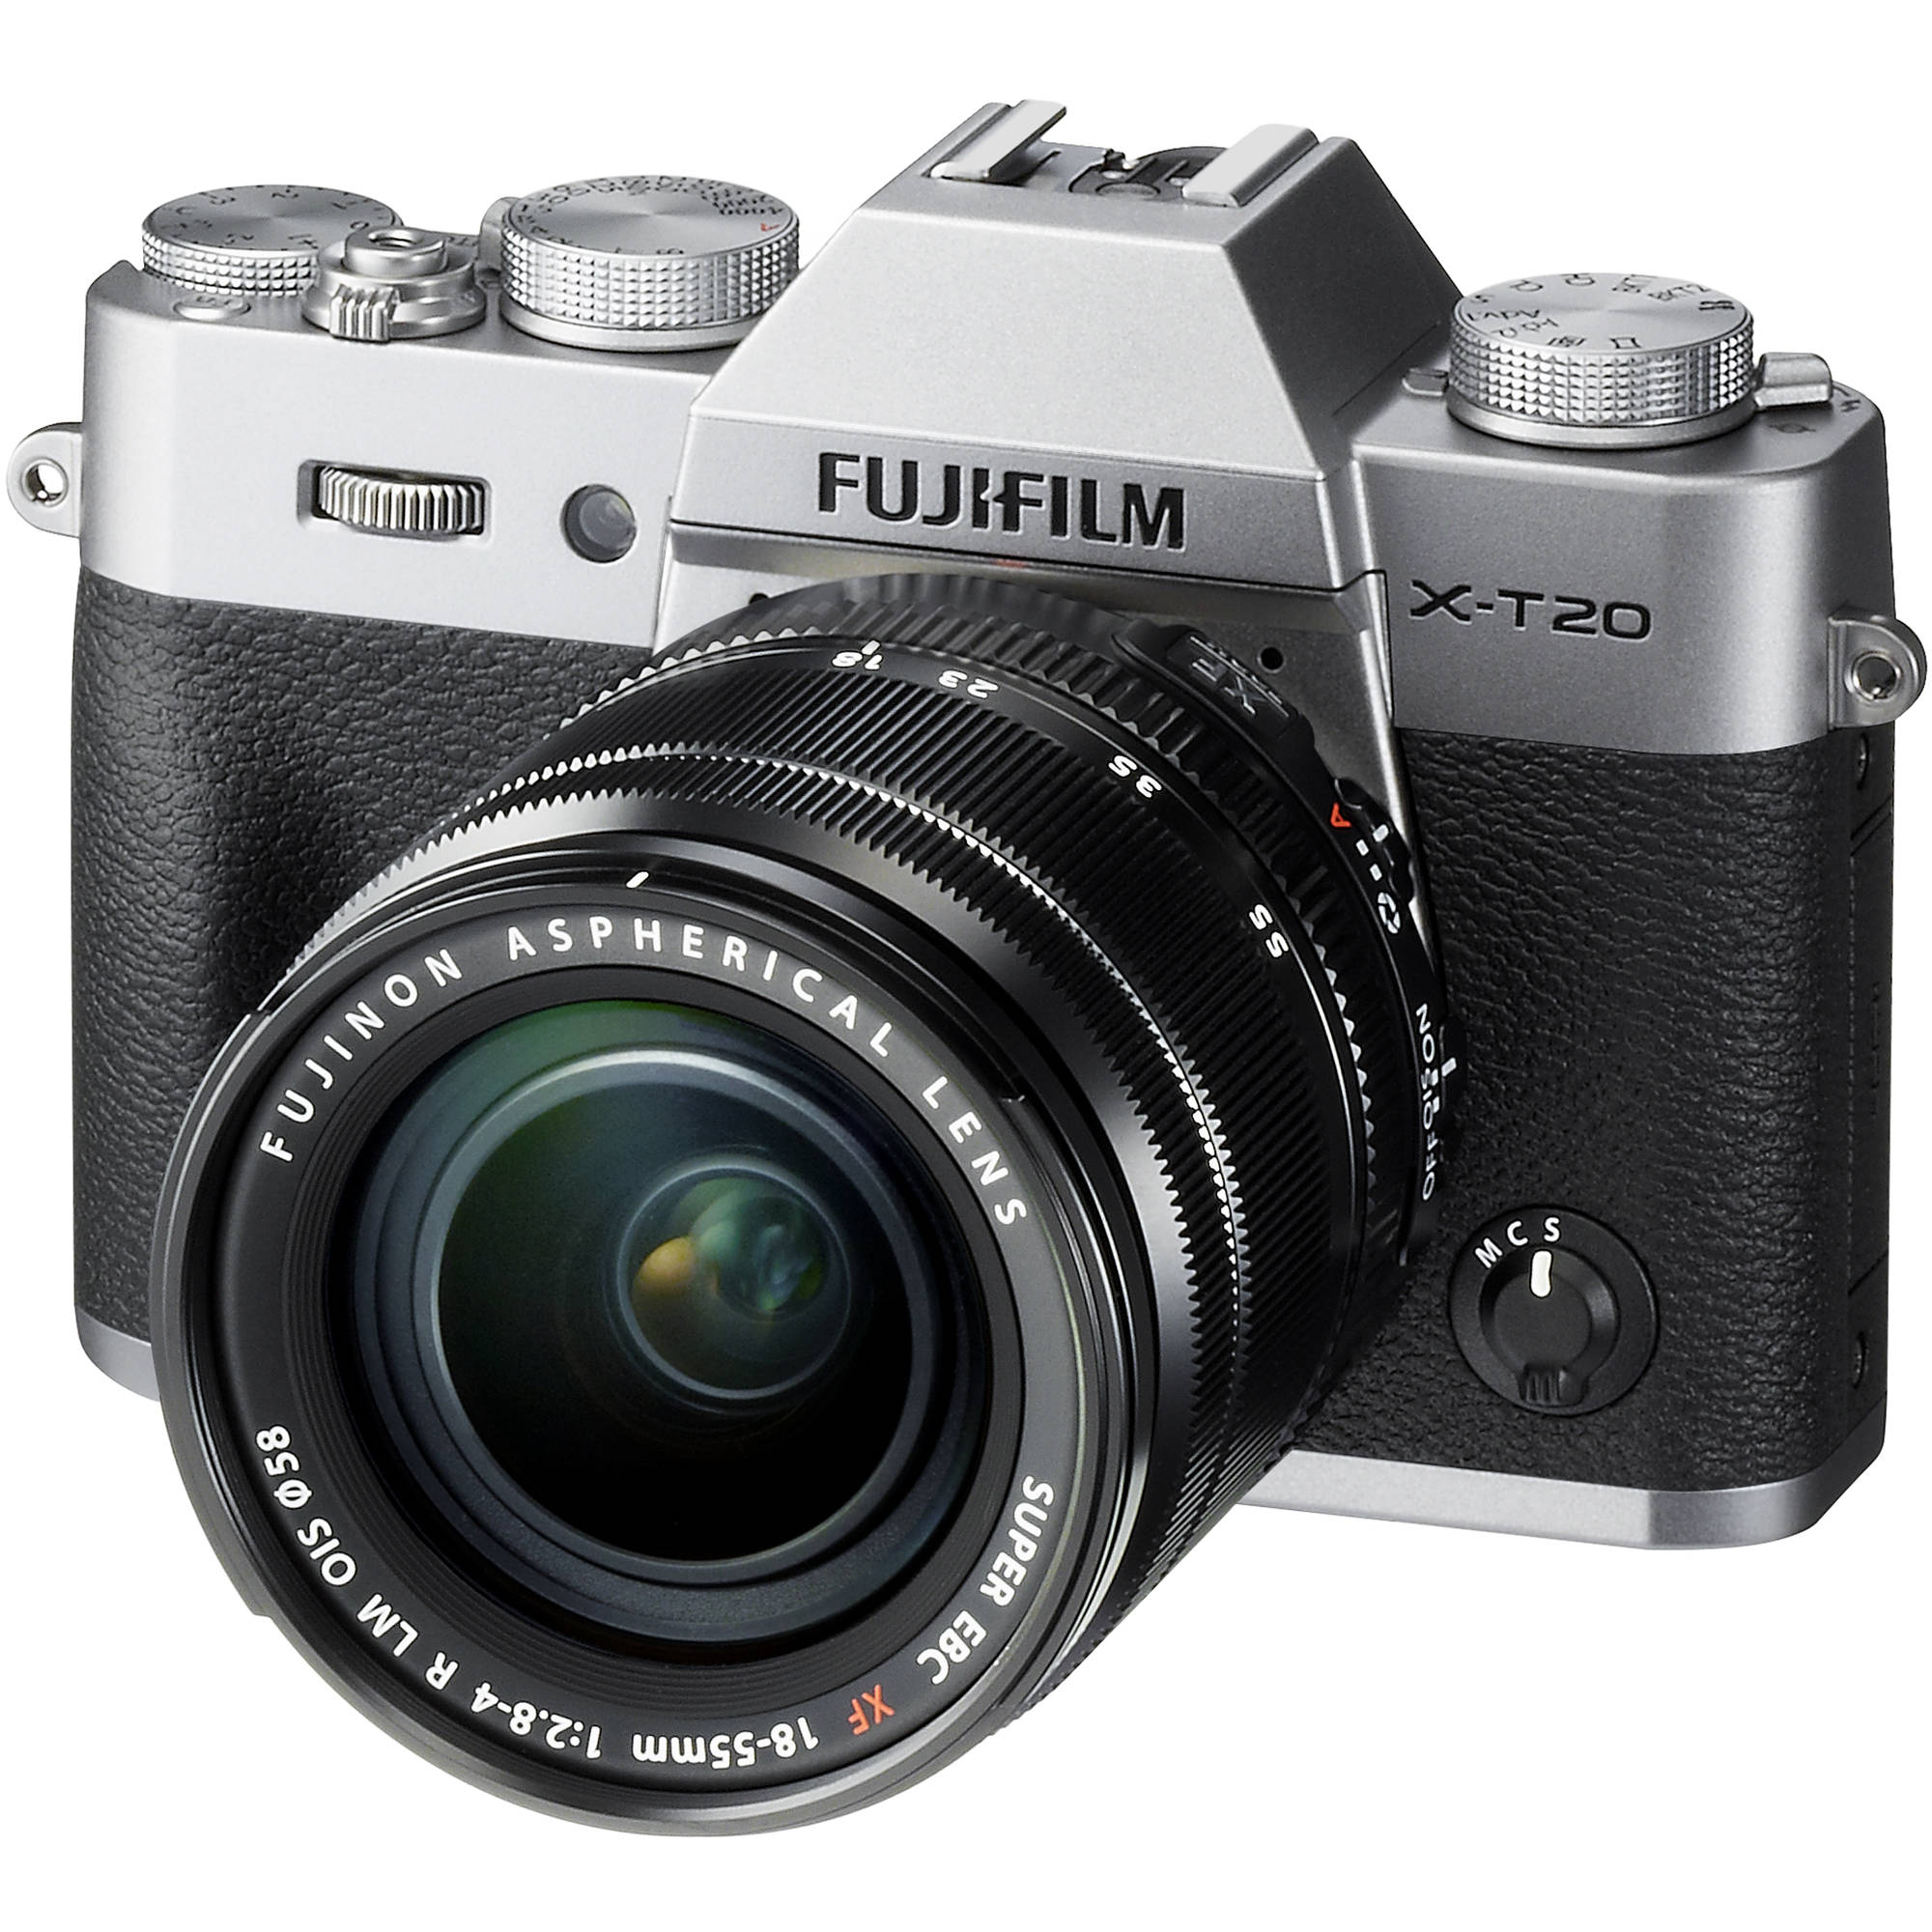 Fujifilm X-T20 Mirrorless Digital Camera with 18-55mm 16542622